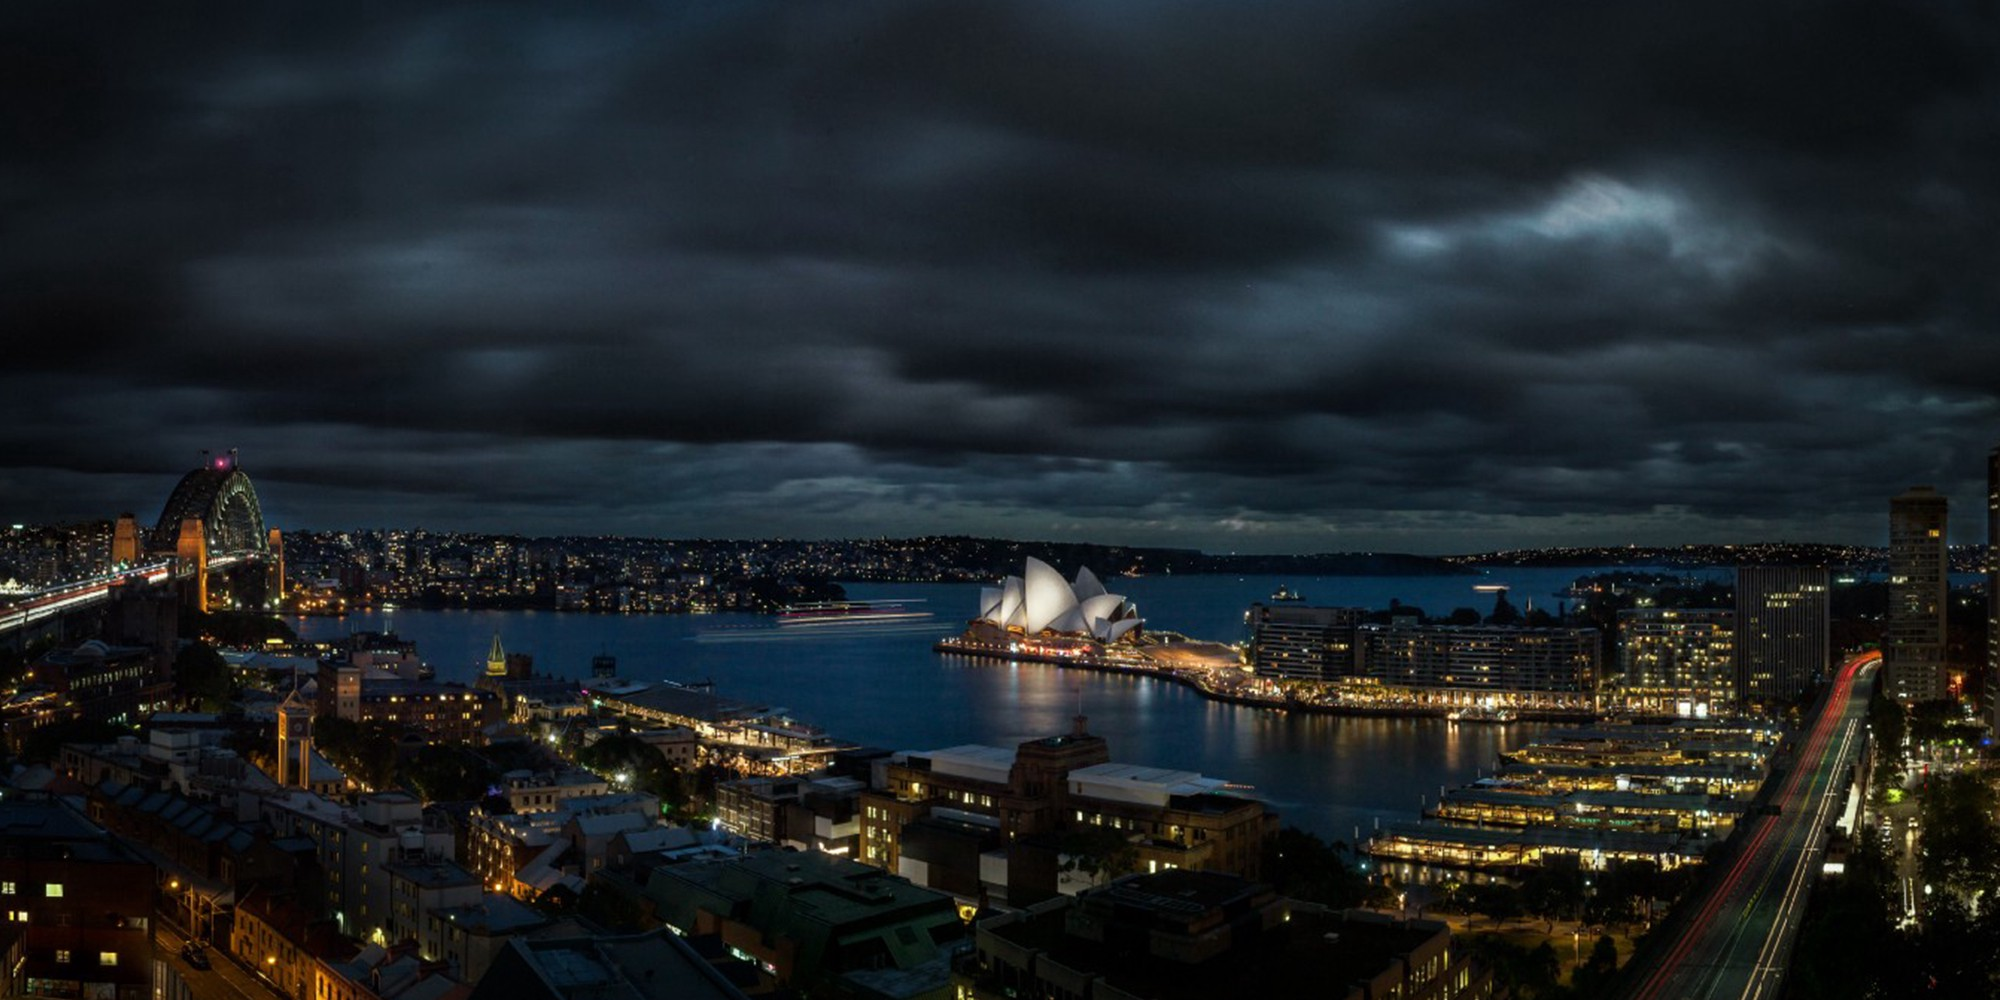 An image from the Sound Off Voice Journal App of Sydney opera house in Australia at night.